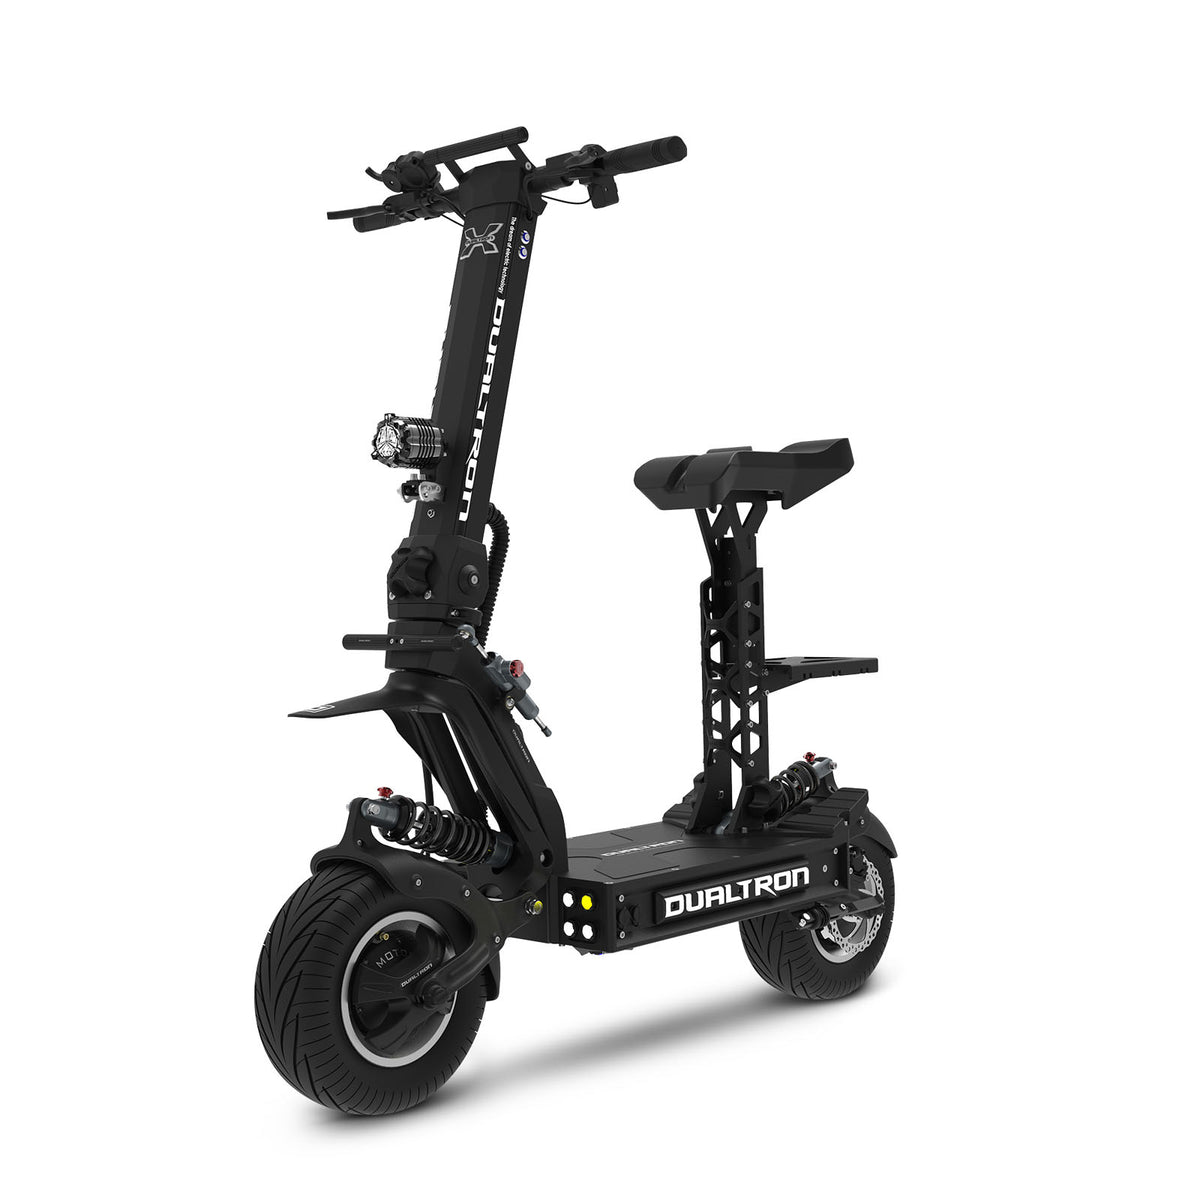 Dualtron X Electric Scooter Front Profile